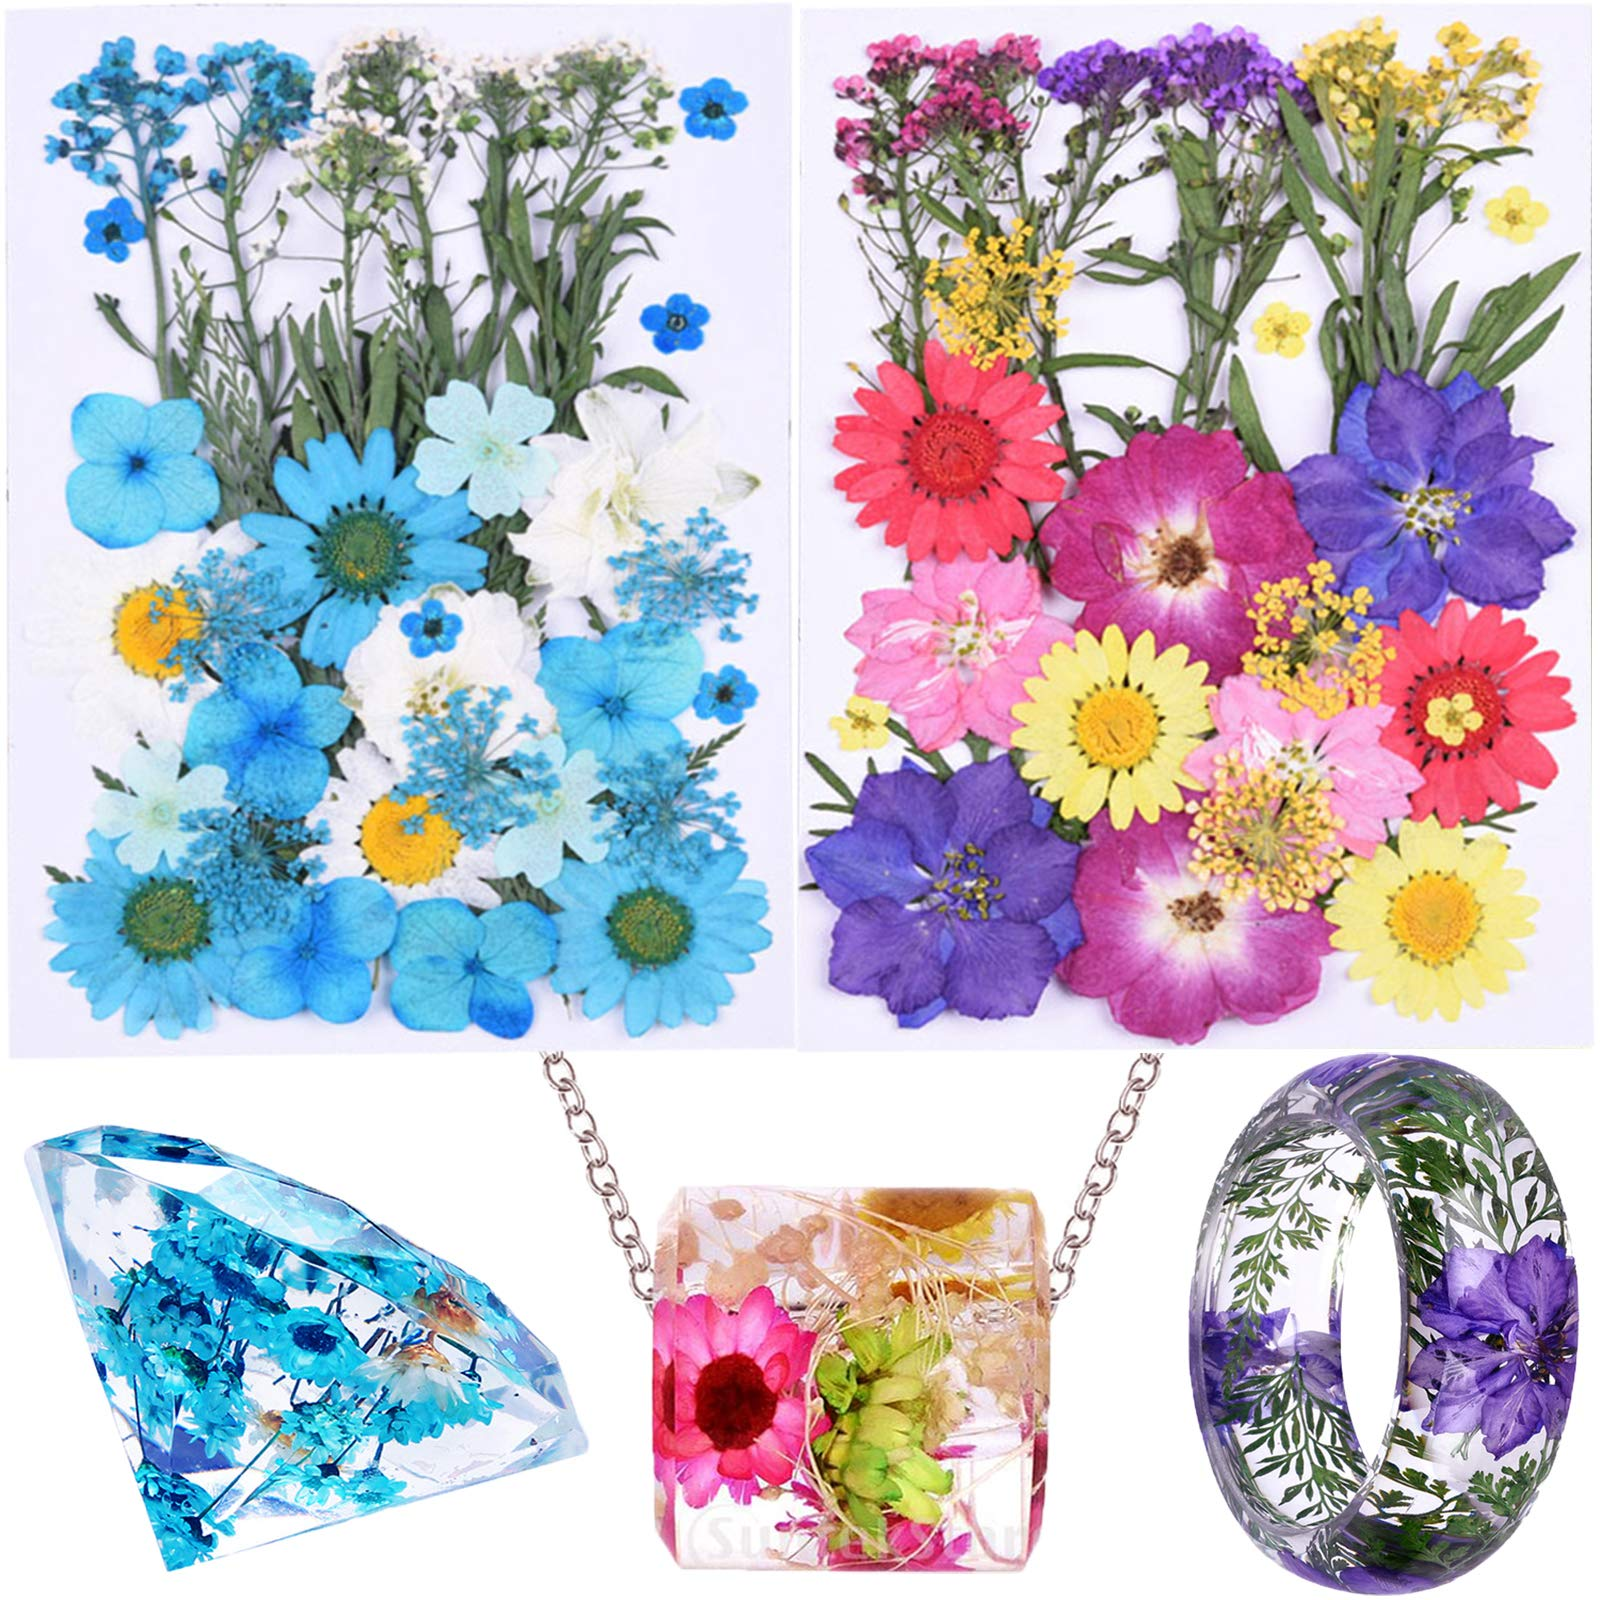 65 Pieces Real Dried Pressed Flowers and Leaves for Resin, Mixed Multiple Resin Flowers Natural Dry Flowers Colorful Daisy, Rose, Narcissus for Resin Jewelry Making,Soap, Candle,Nail Beauty and More